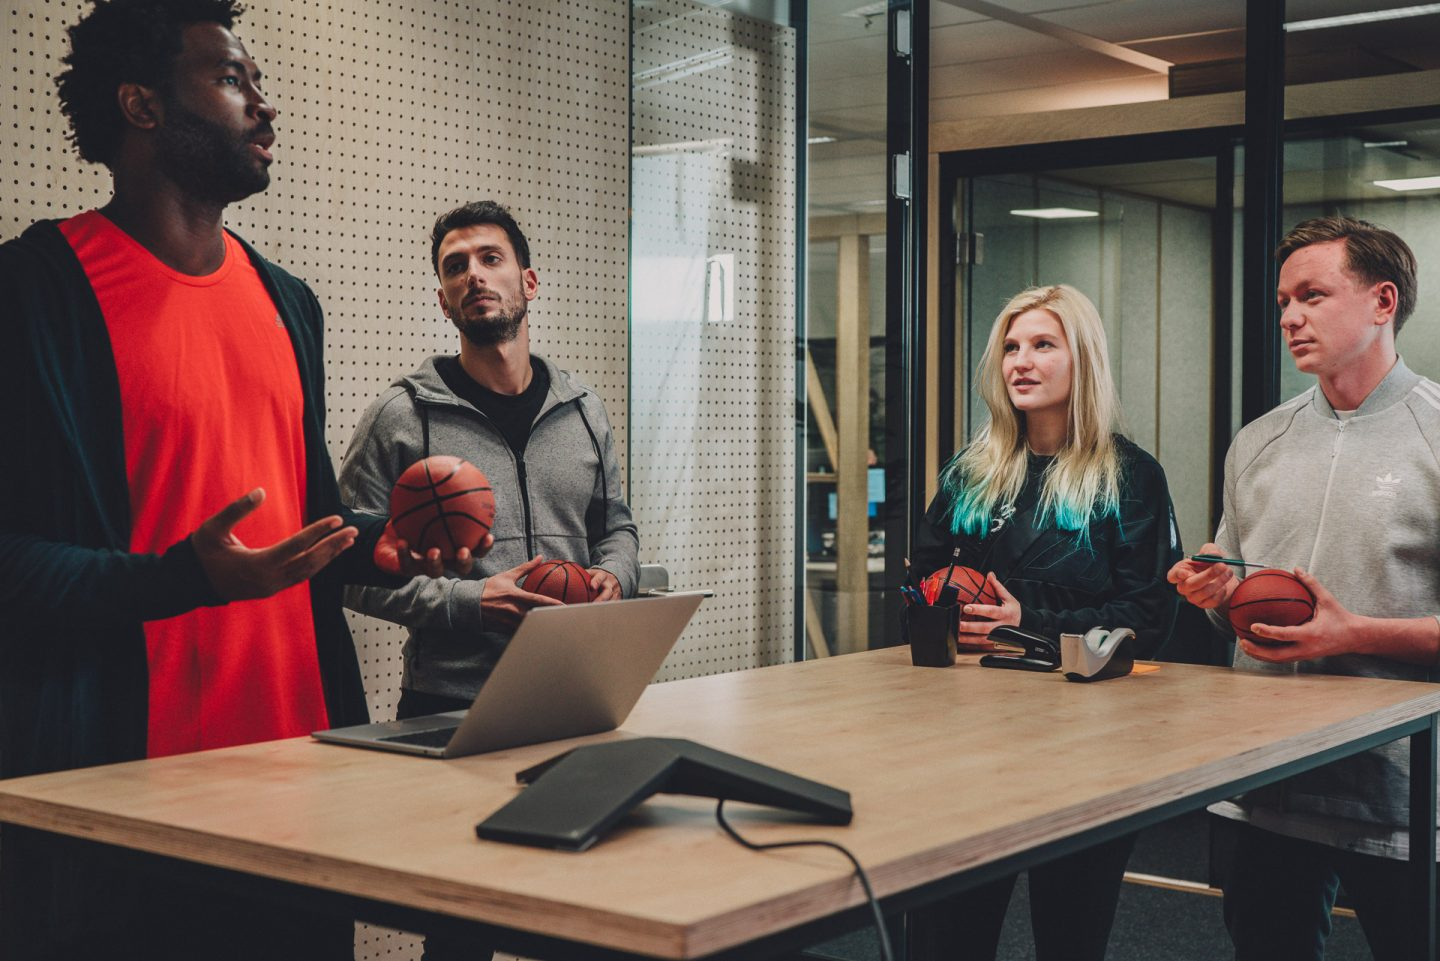 Employees brainstorming ideas during a meeting in a modern office environment. HereToCreate, adidas, teamwork, basketball, digital, leadership, strategy